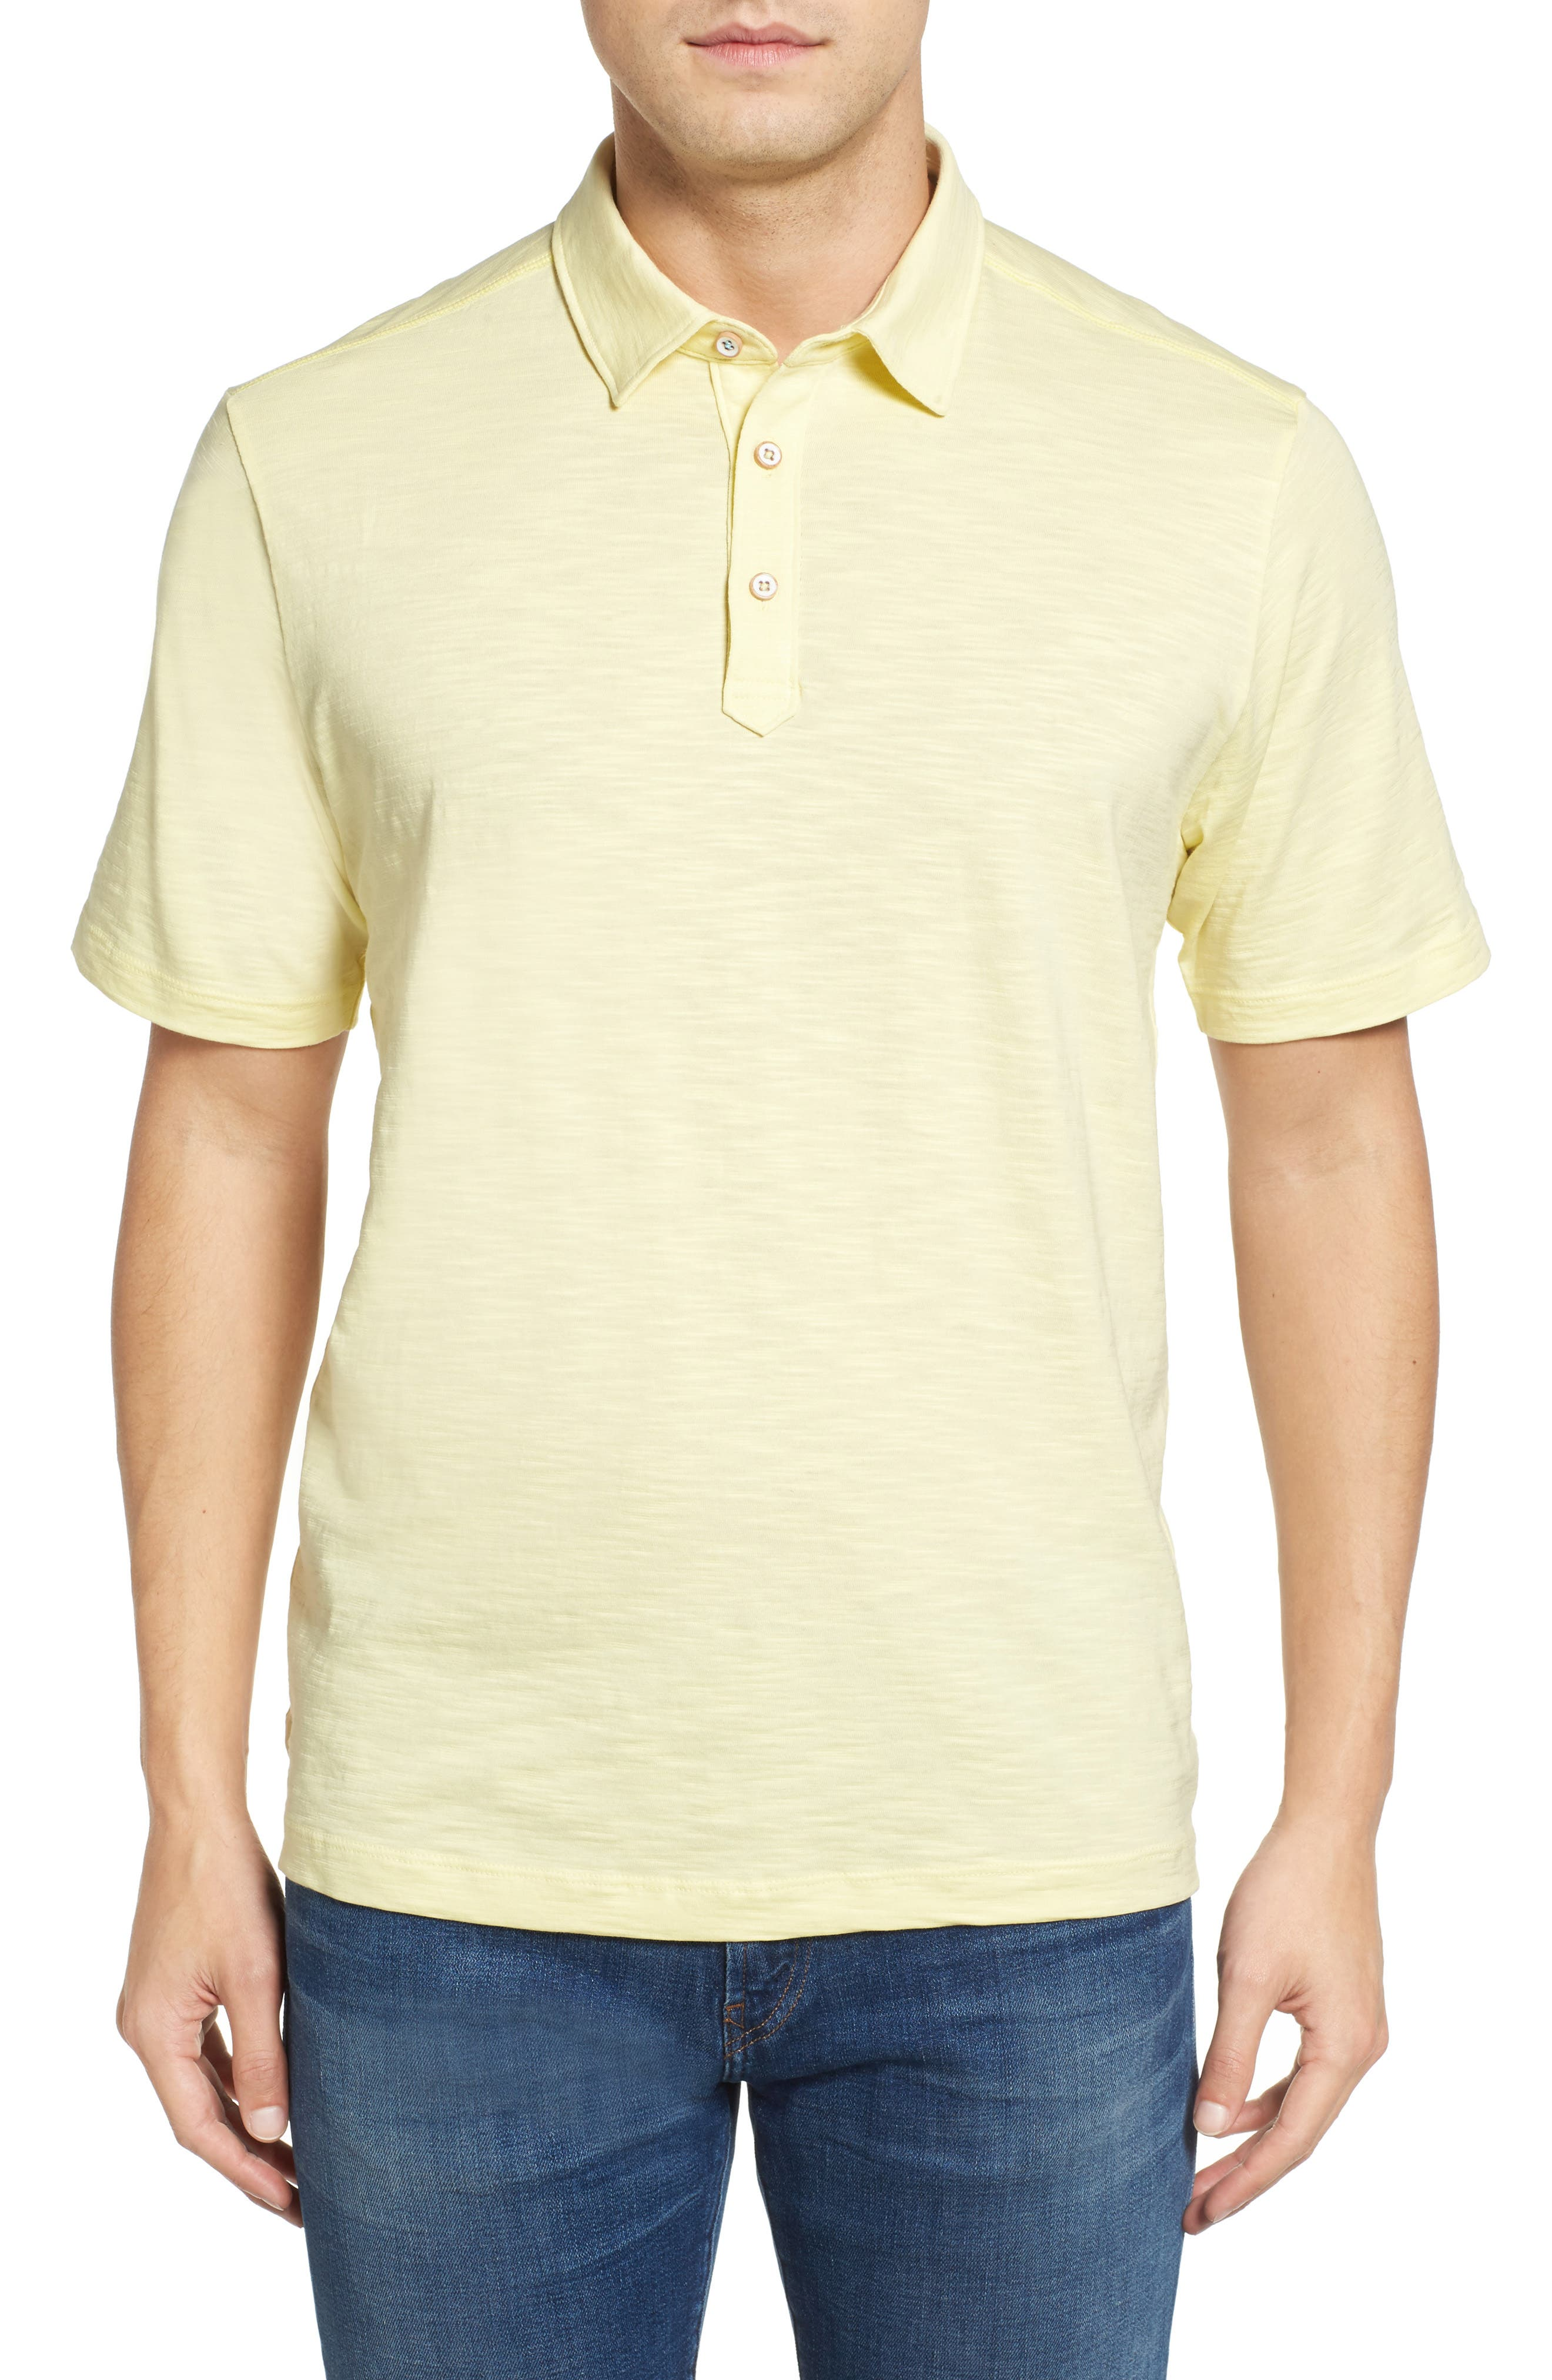 Tommy Bahama 'Portside Player Spectator' Regular Pima Cotton Polo